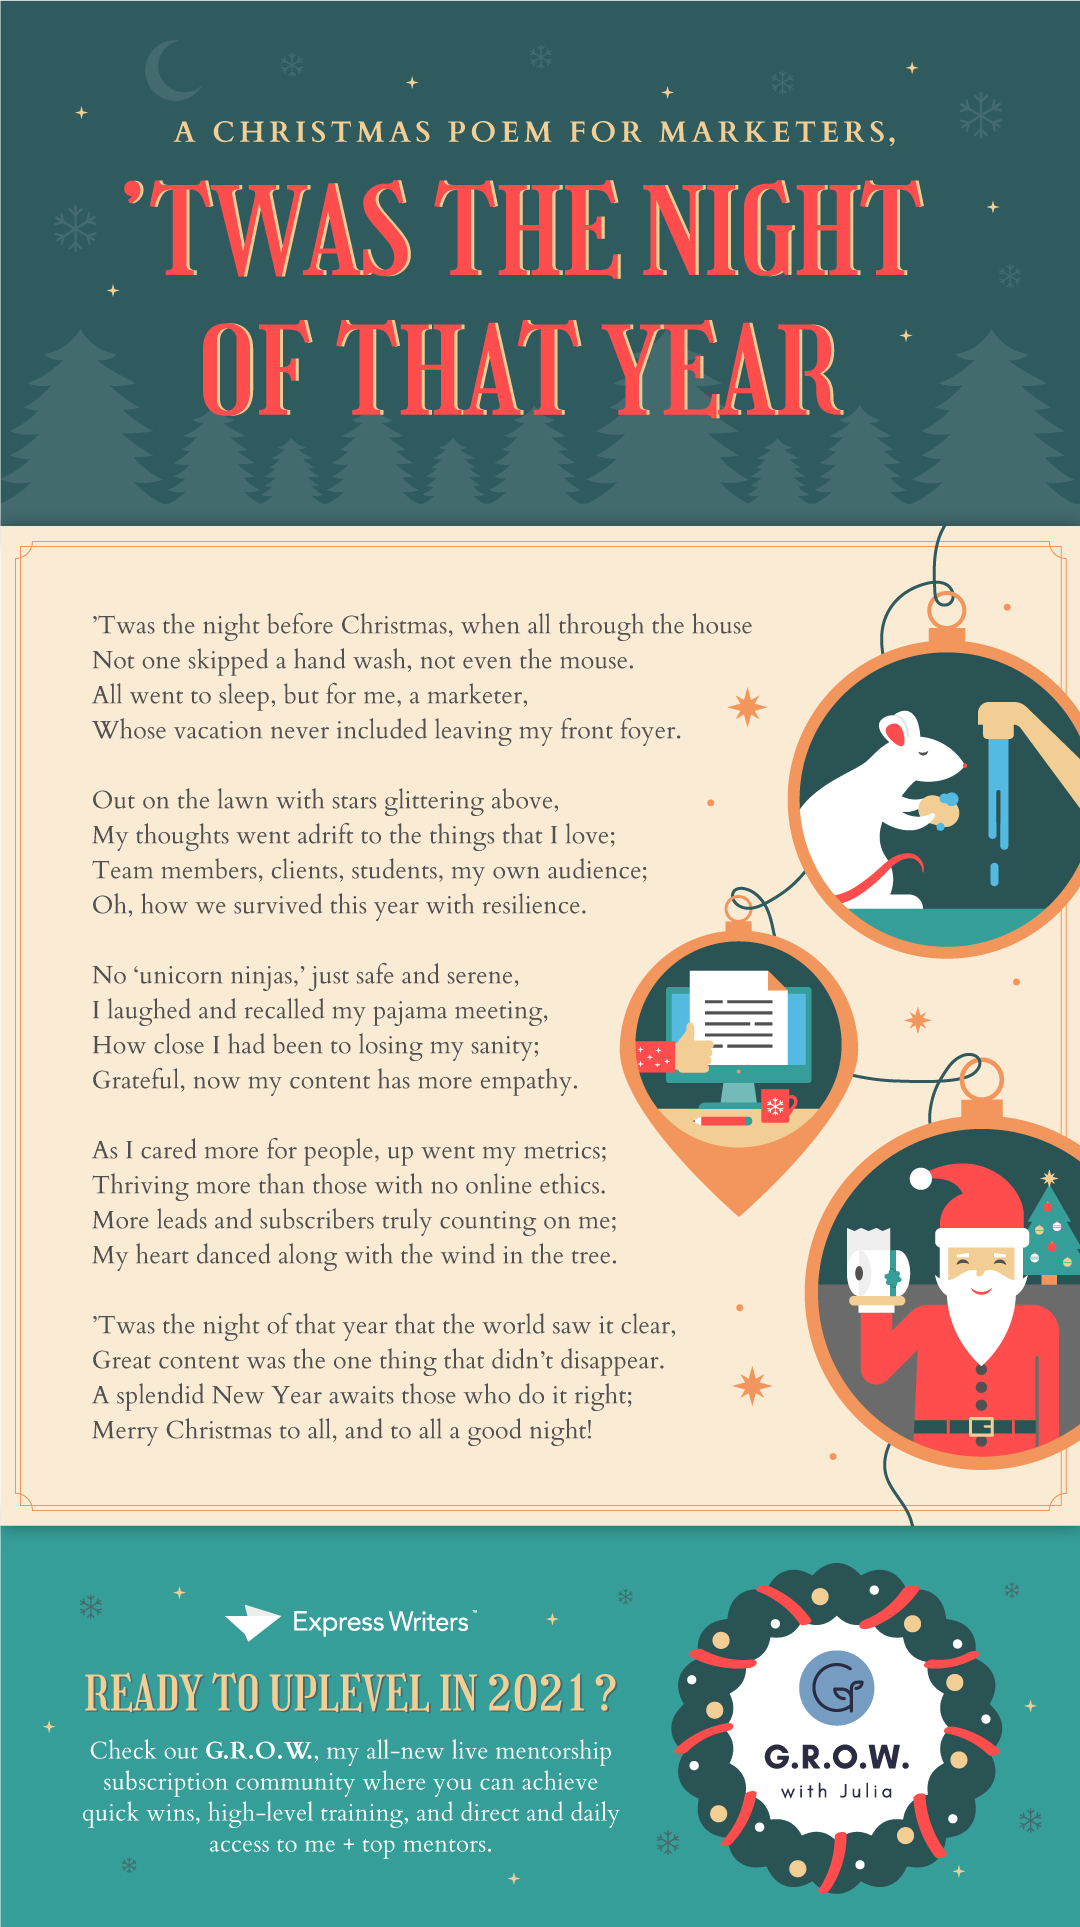 A Christmas Poem for Marketers infographic